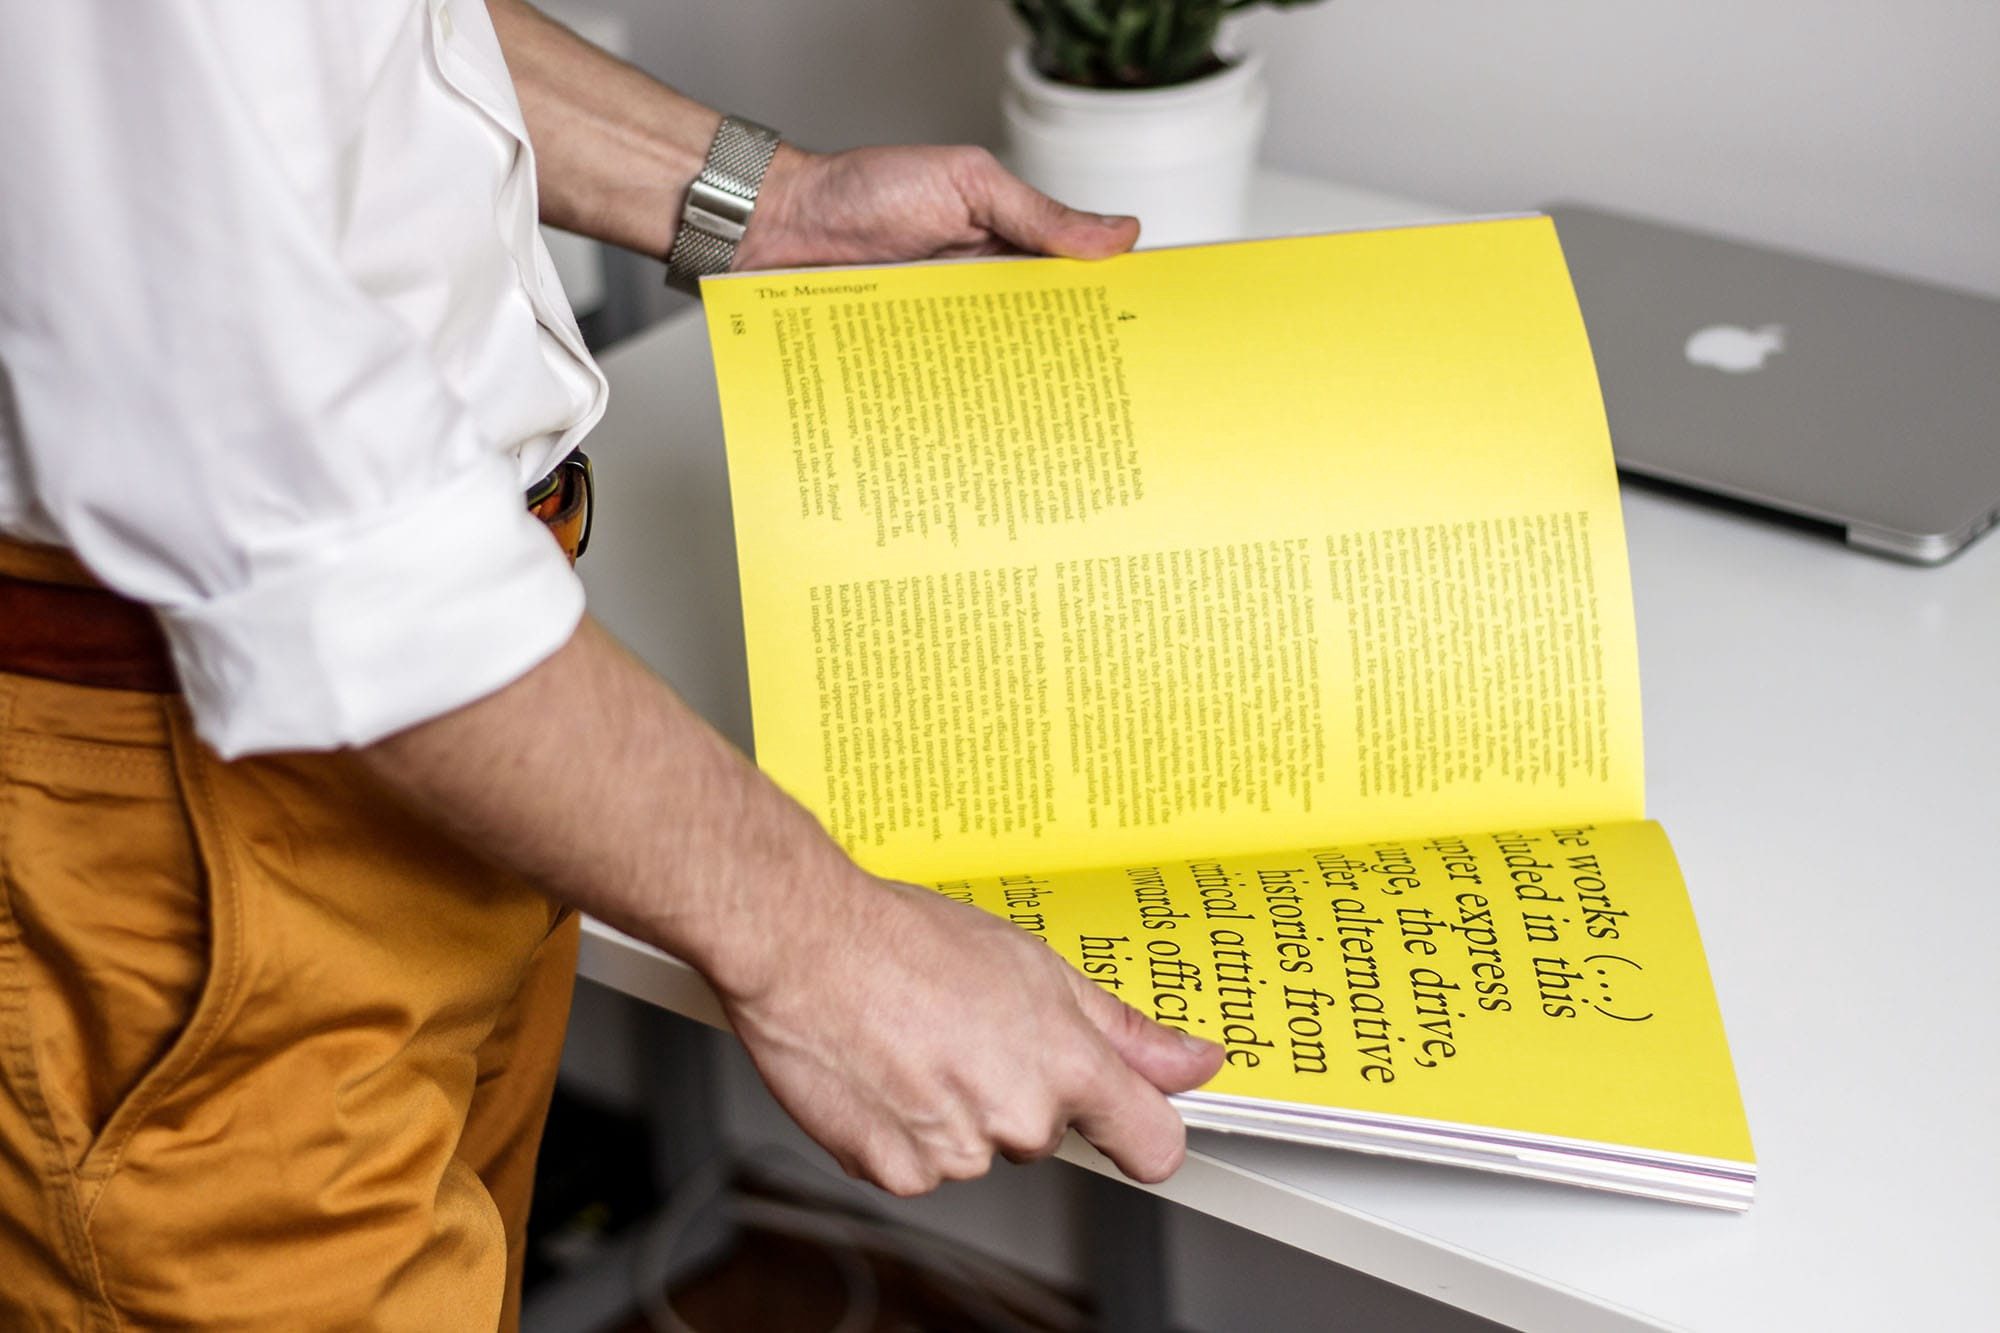 A person opening a book with pages in yellow showing beautiful typography